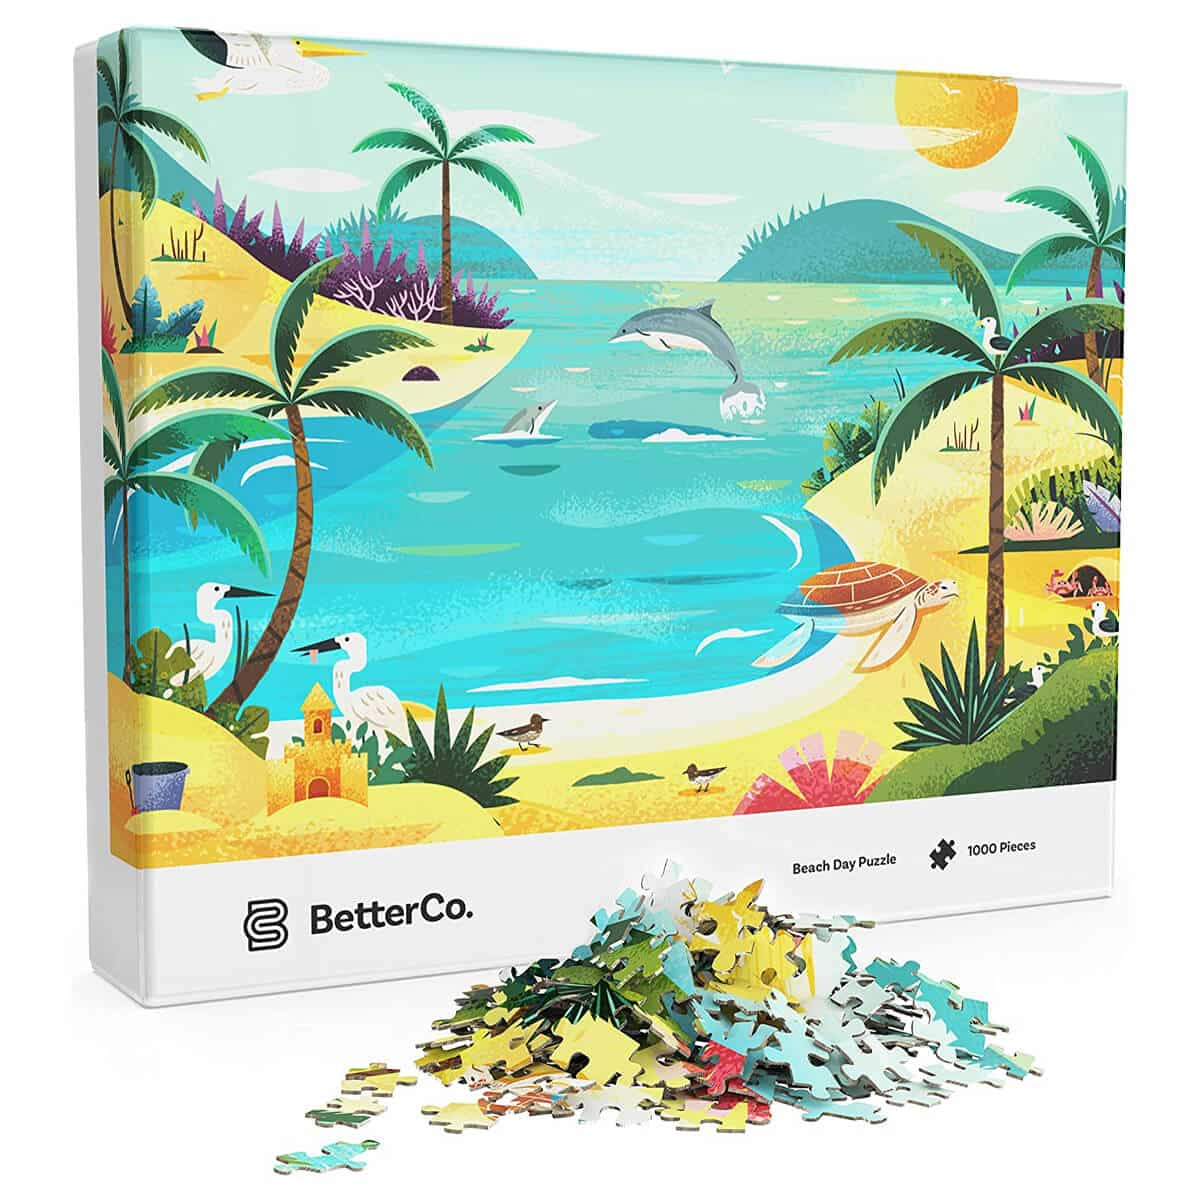 BetterCo. - Beach Day Puzzle 1000 Pieces